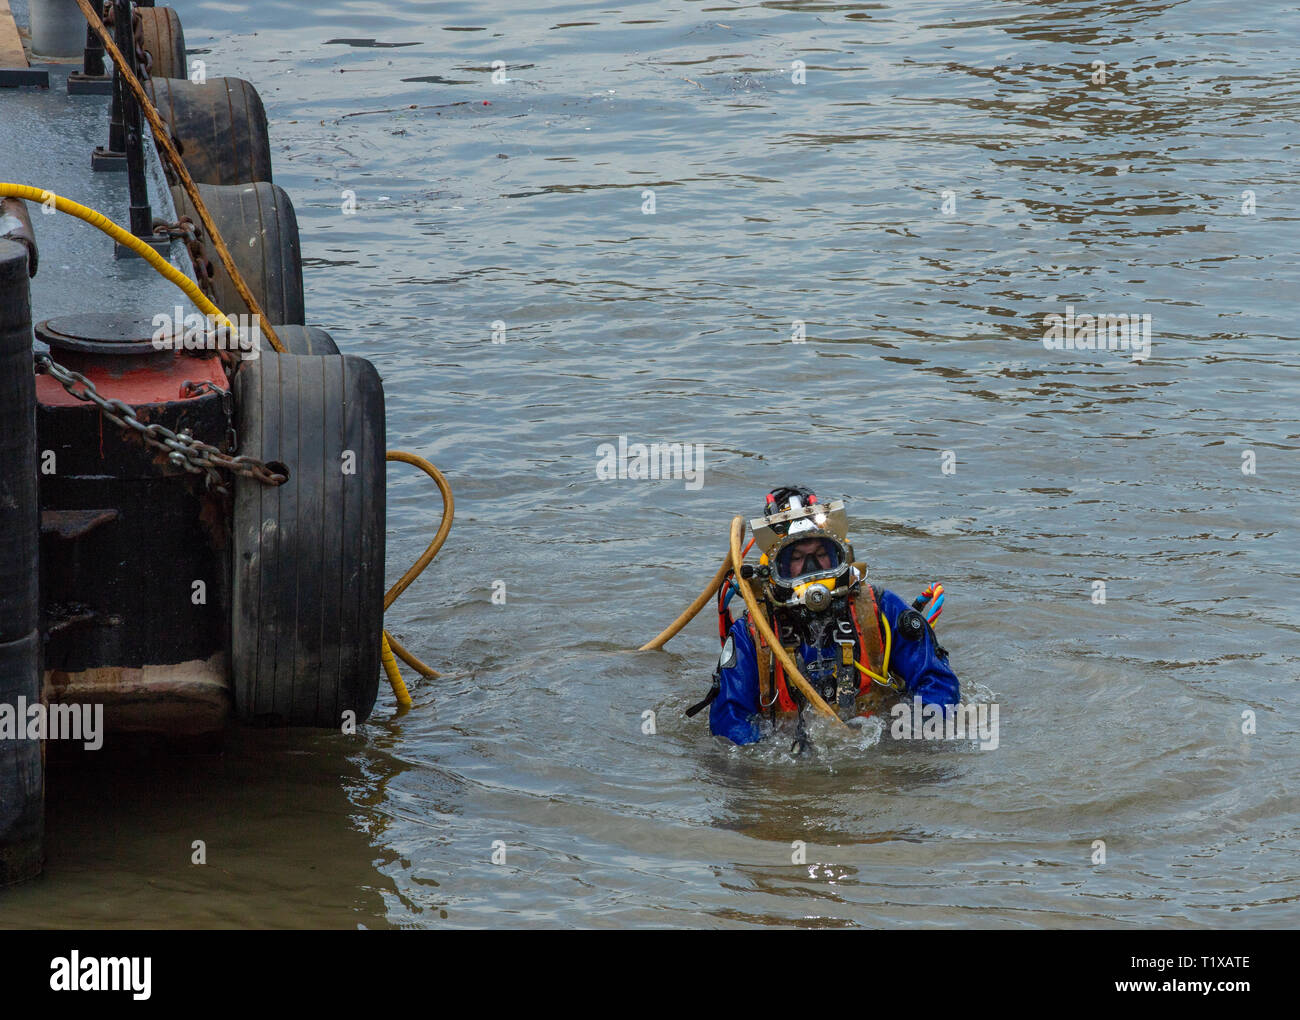 Diver emerges from the river Thames, London, UK, alongside the maintenance boat, after unblocking an underwater drain with a high pressure pipe. - Stock Image